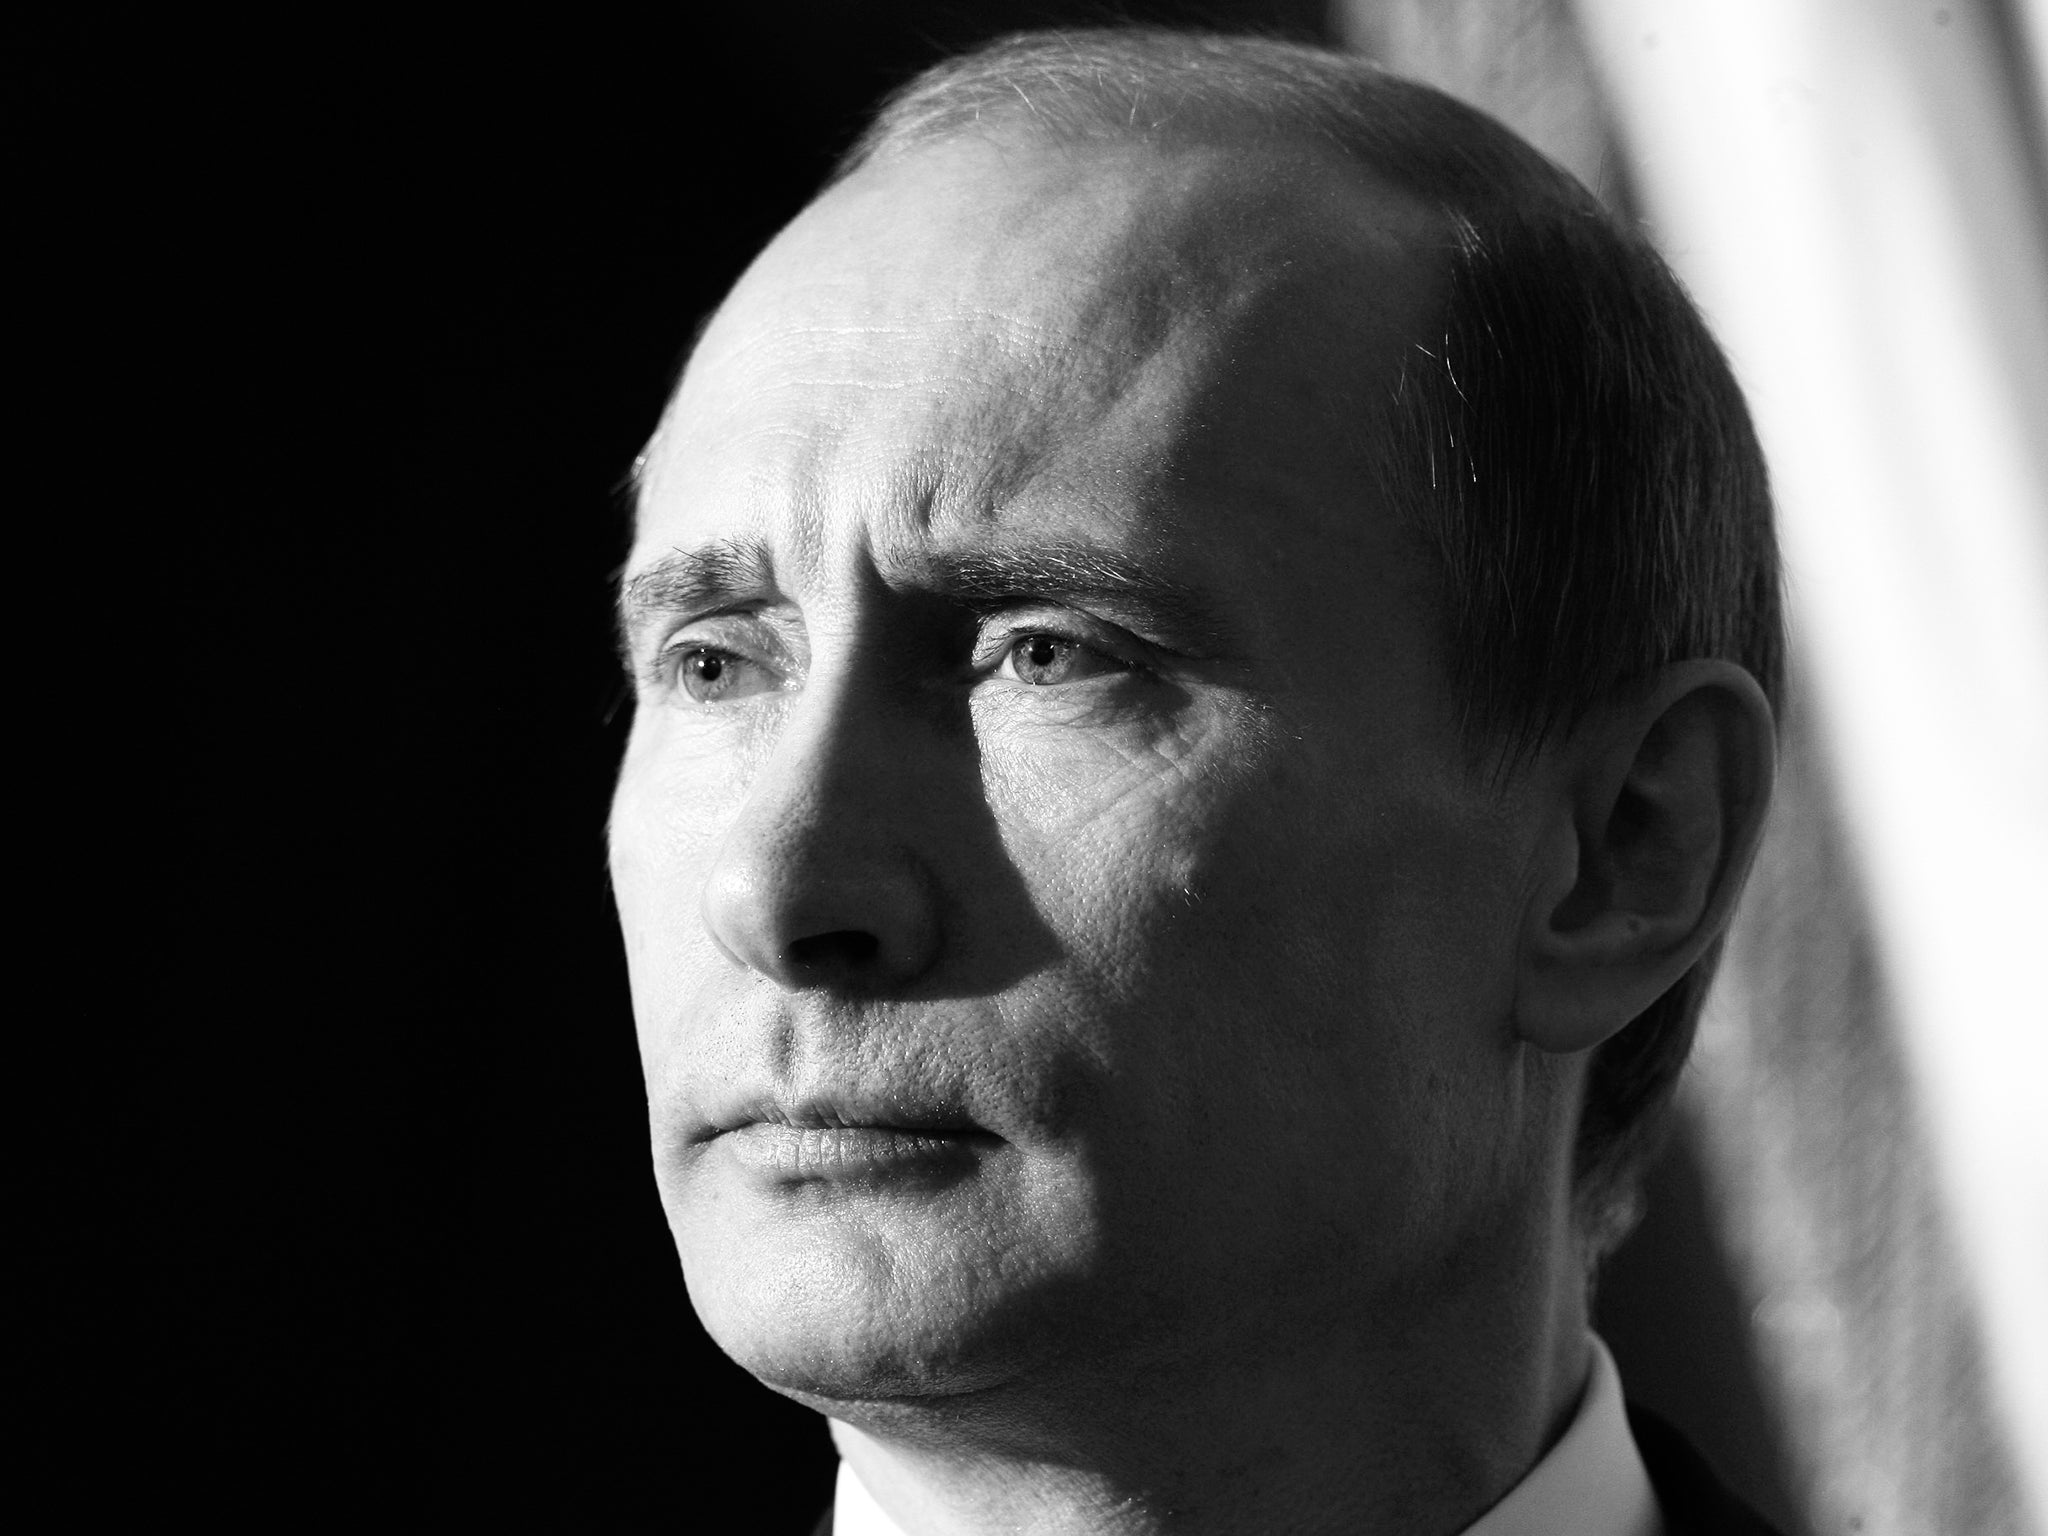 Vladimir Putin bears responsibility for the HIV epidemic facing Russia | The Independent